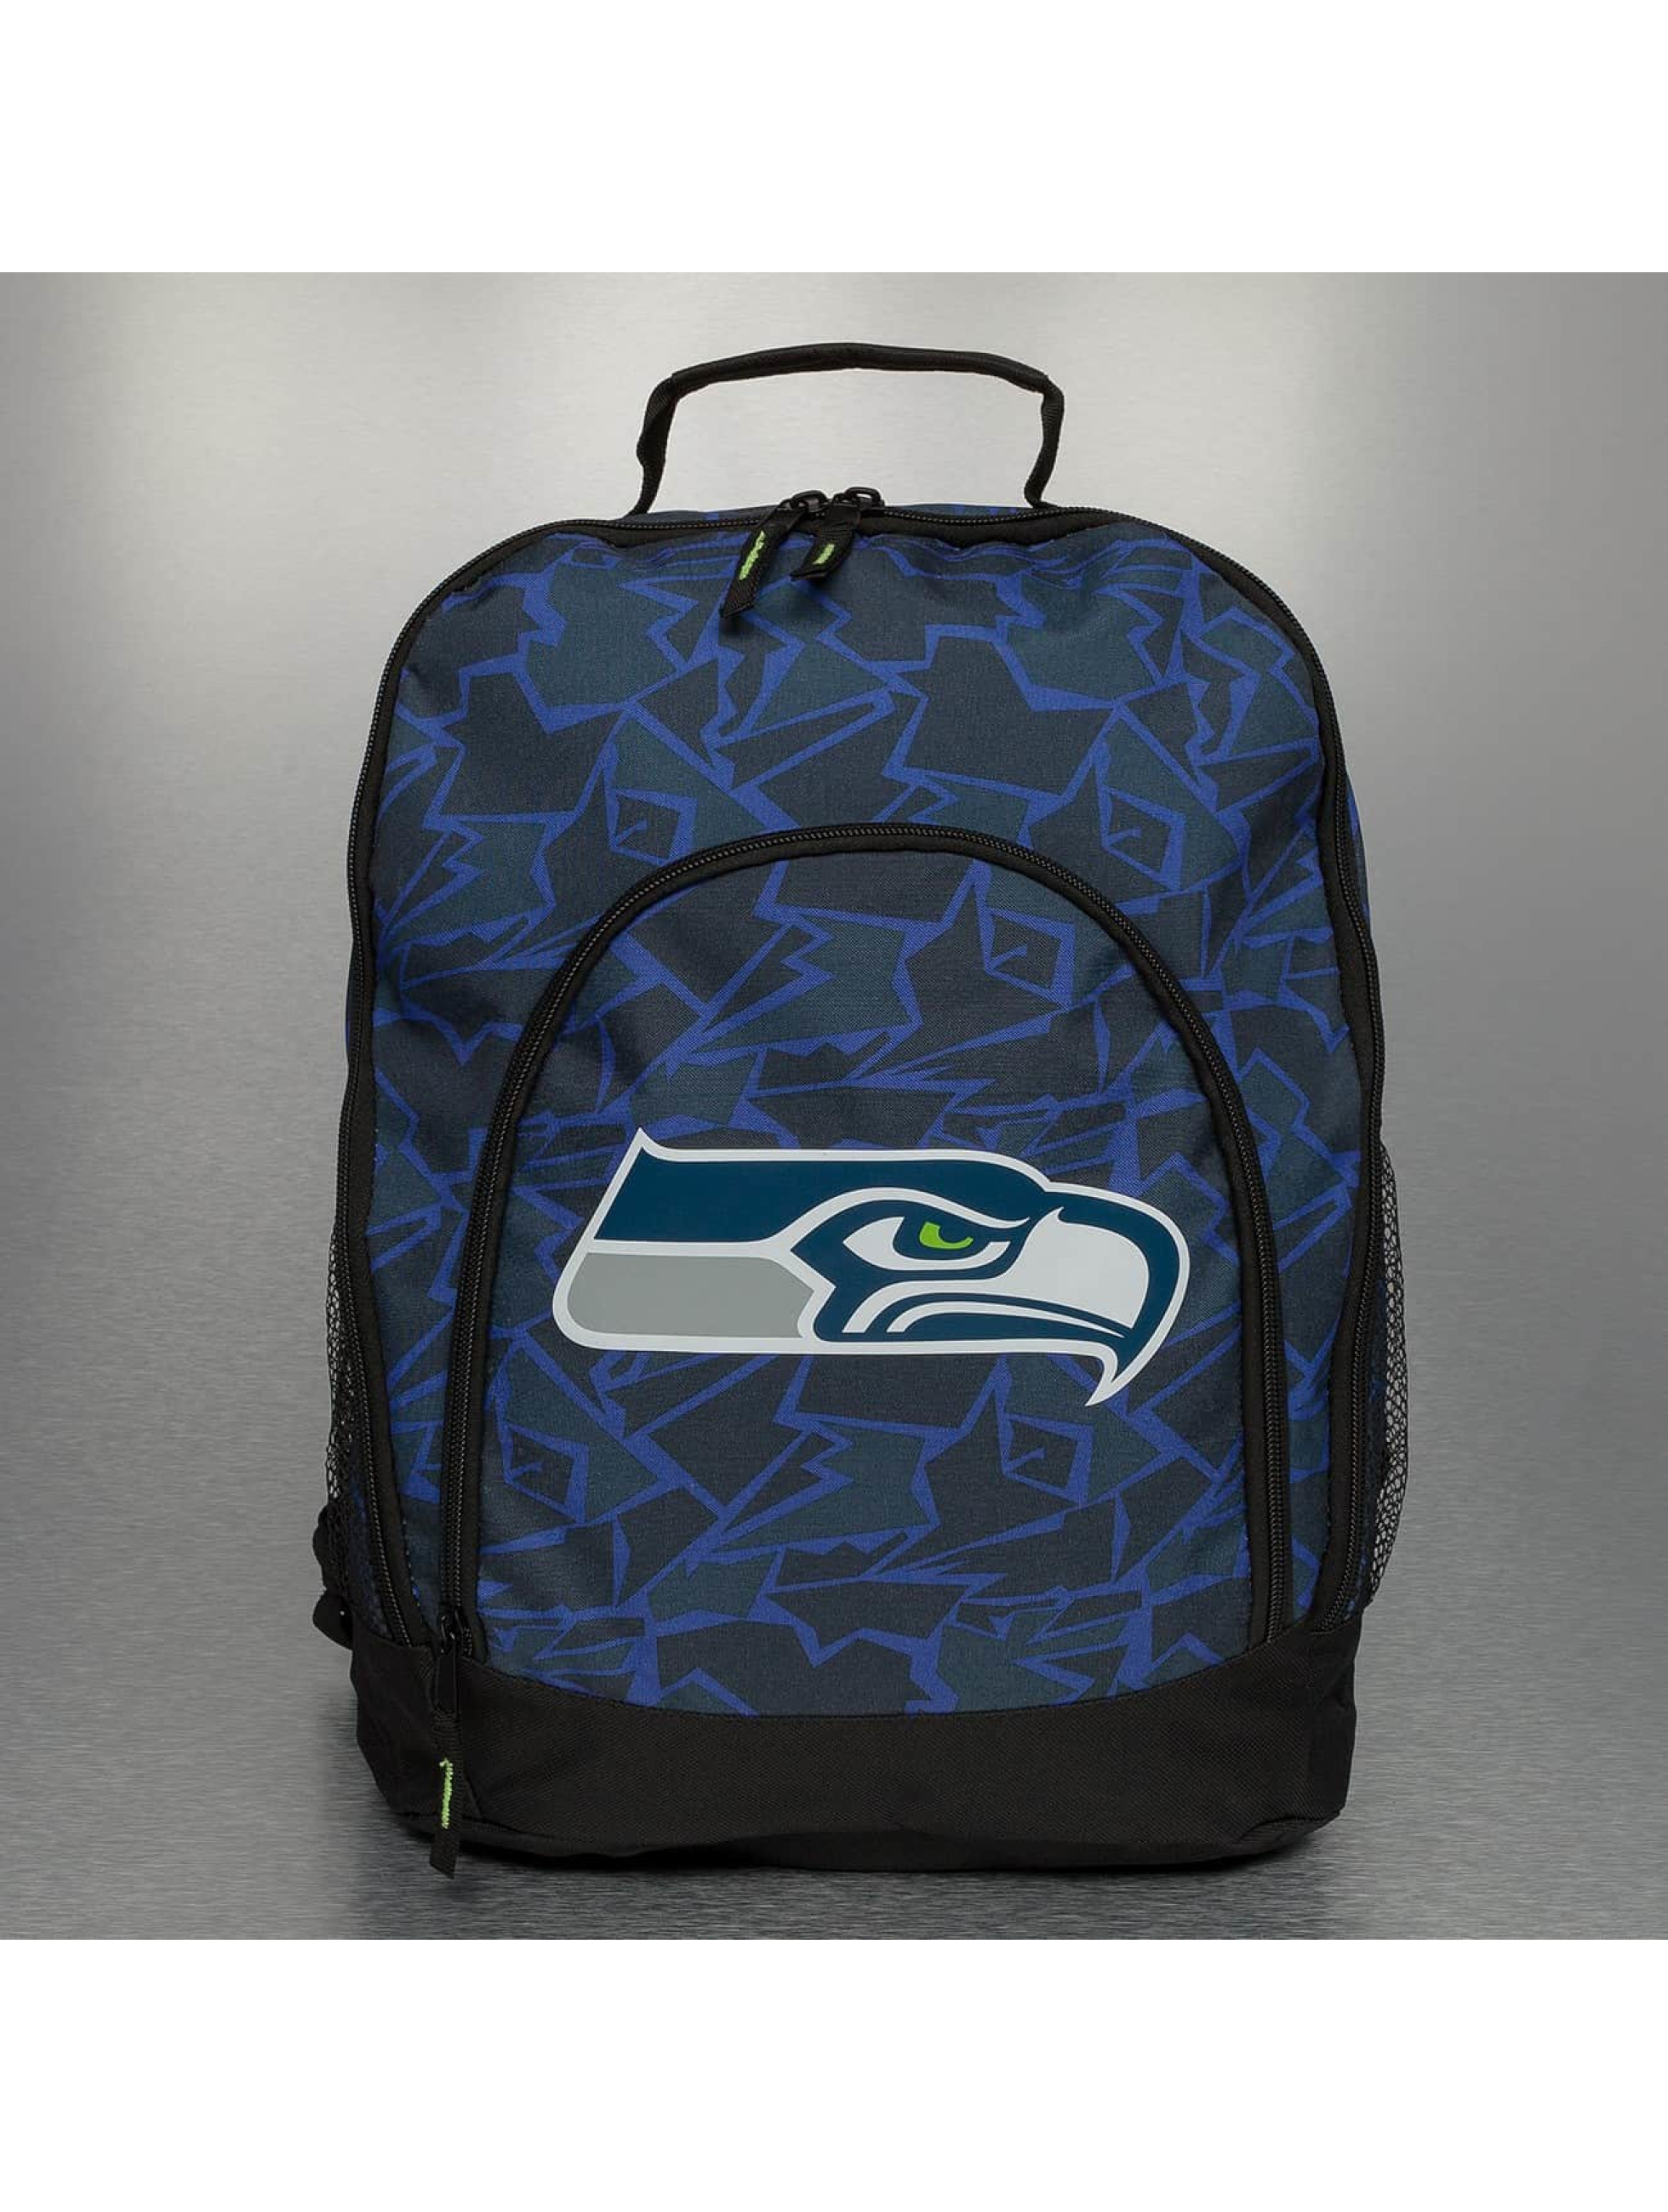 Forever Collectibles Sac à Dos Collectibles NFL Camouflage bleu